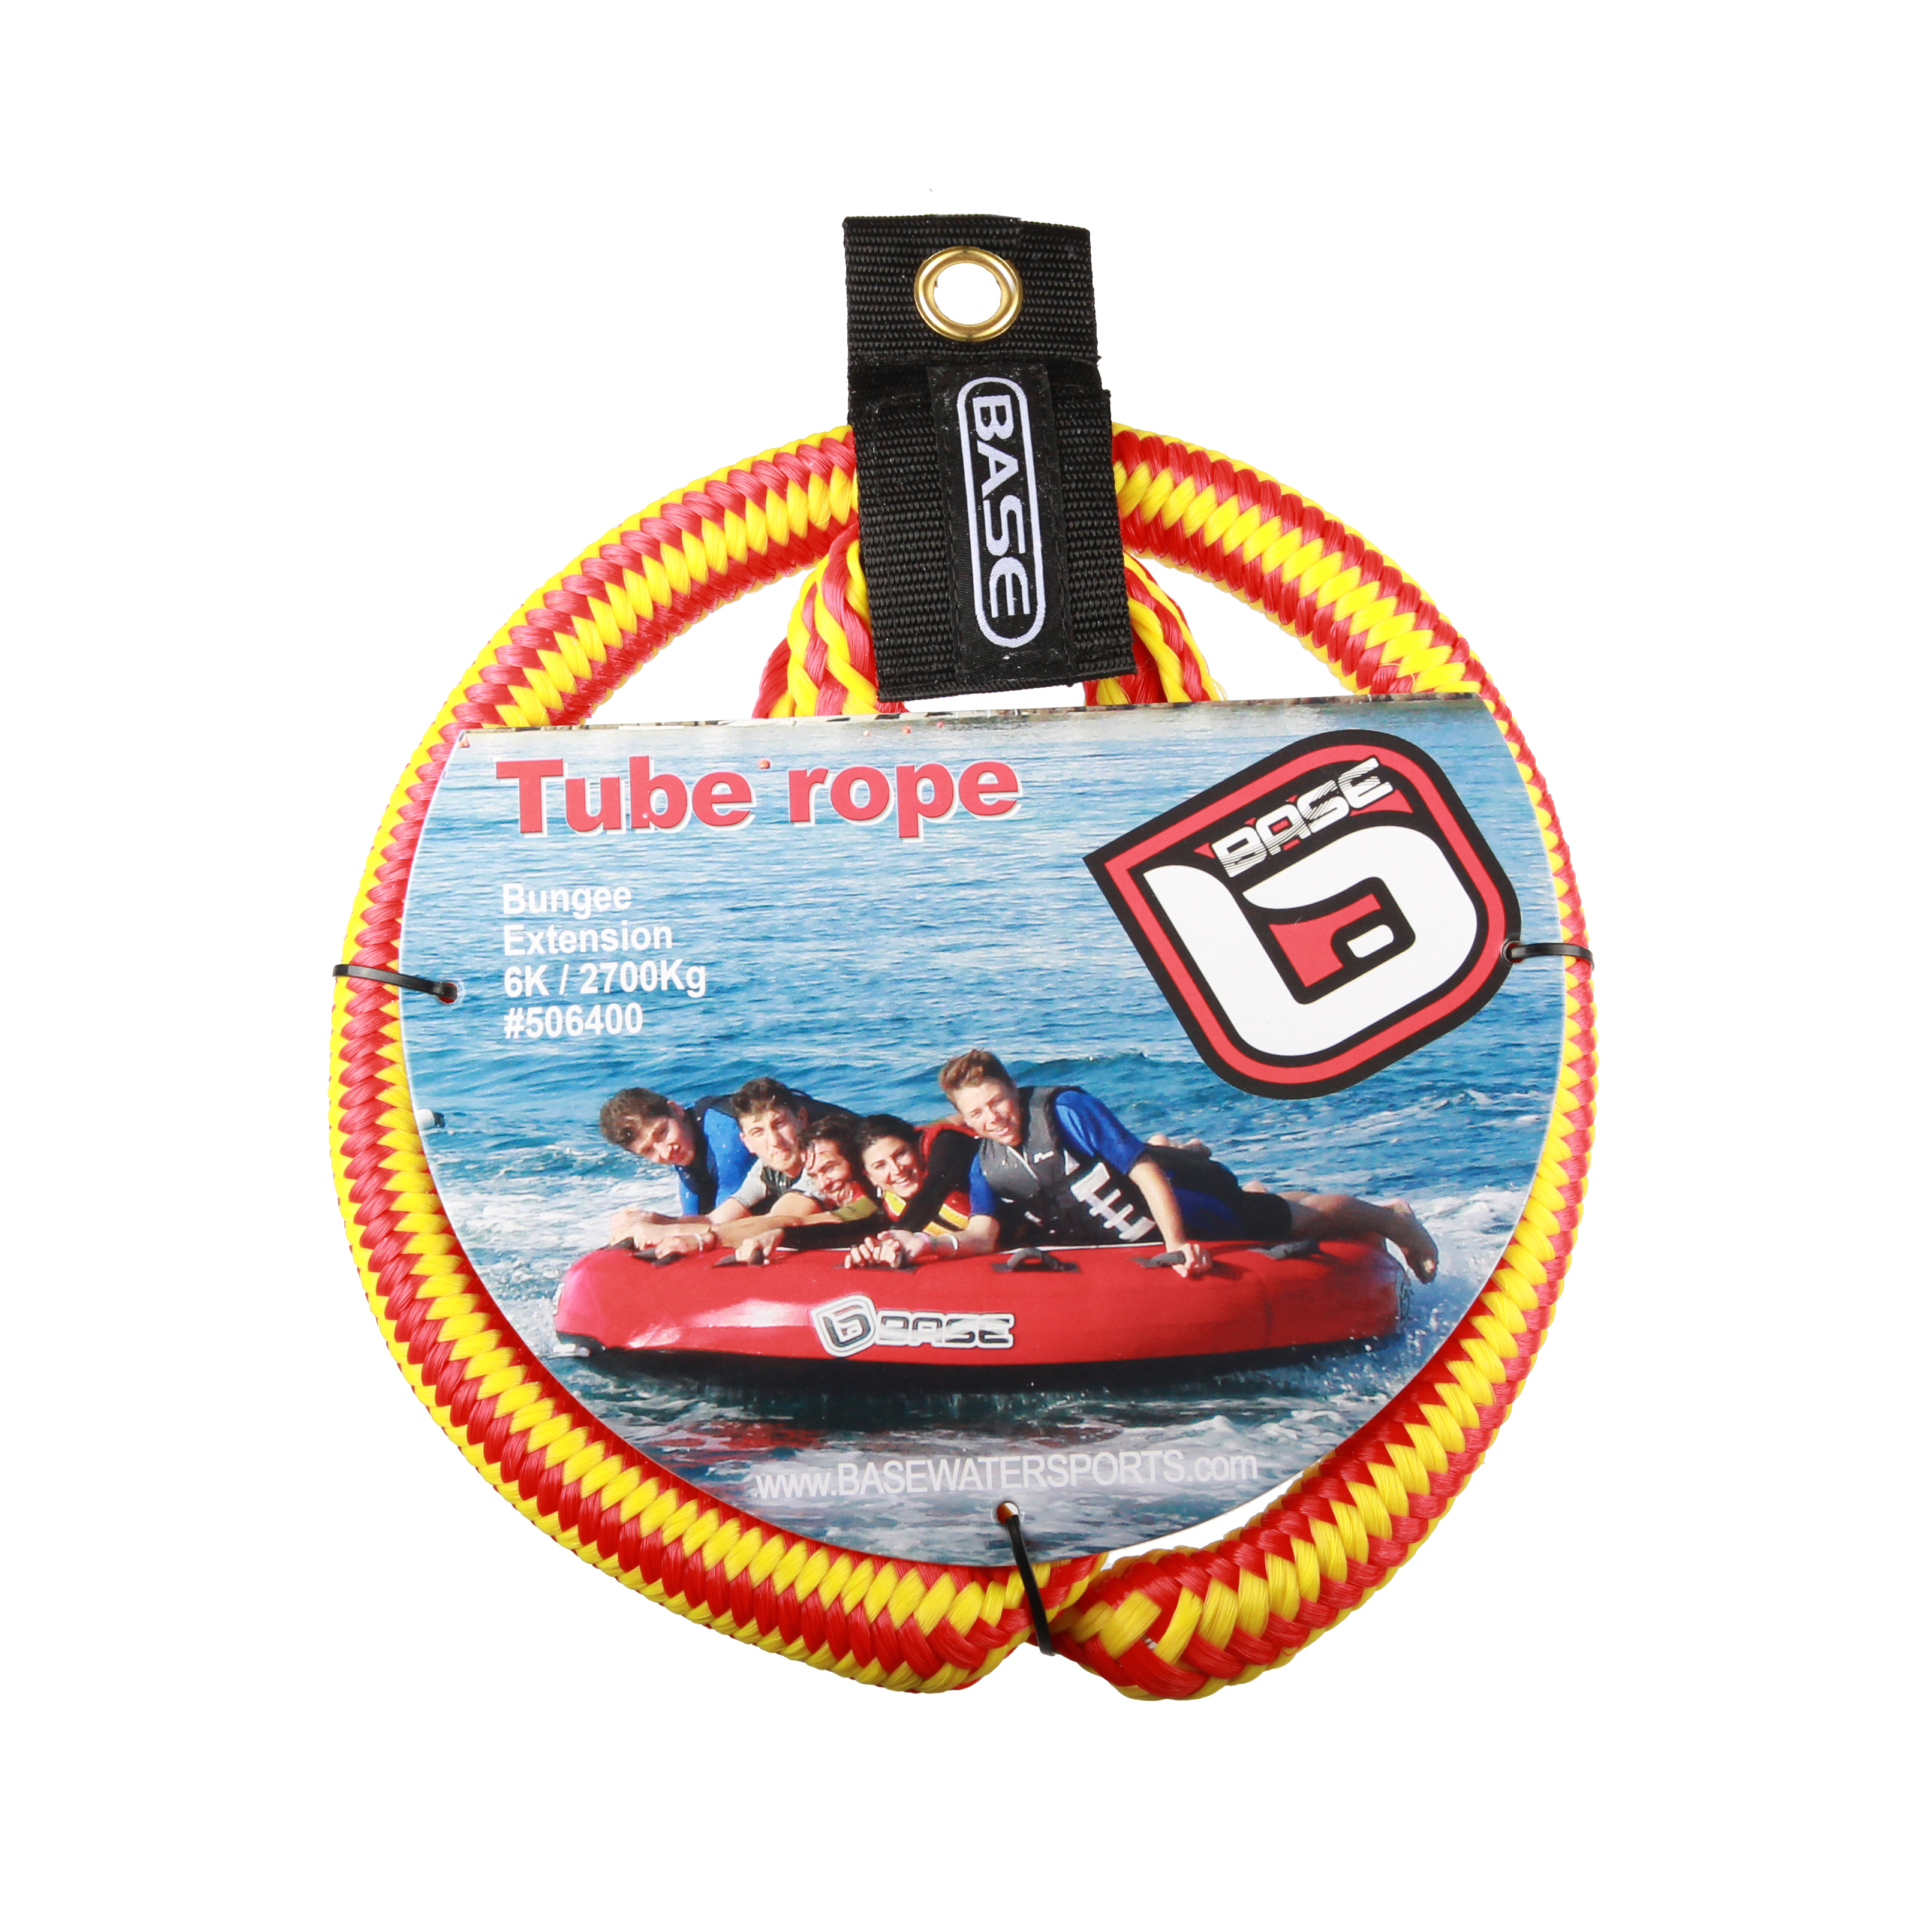 BUNGEE TUBE ROPE, EXTENSION BASE SPORTS 2017